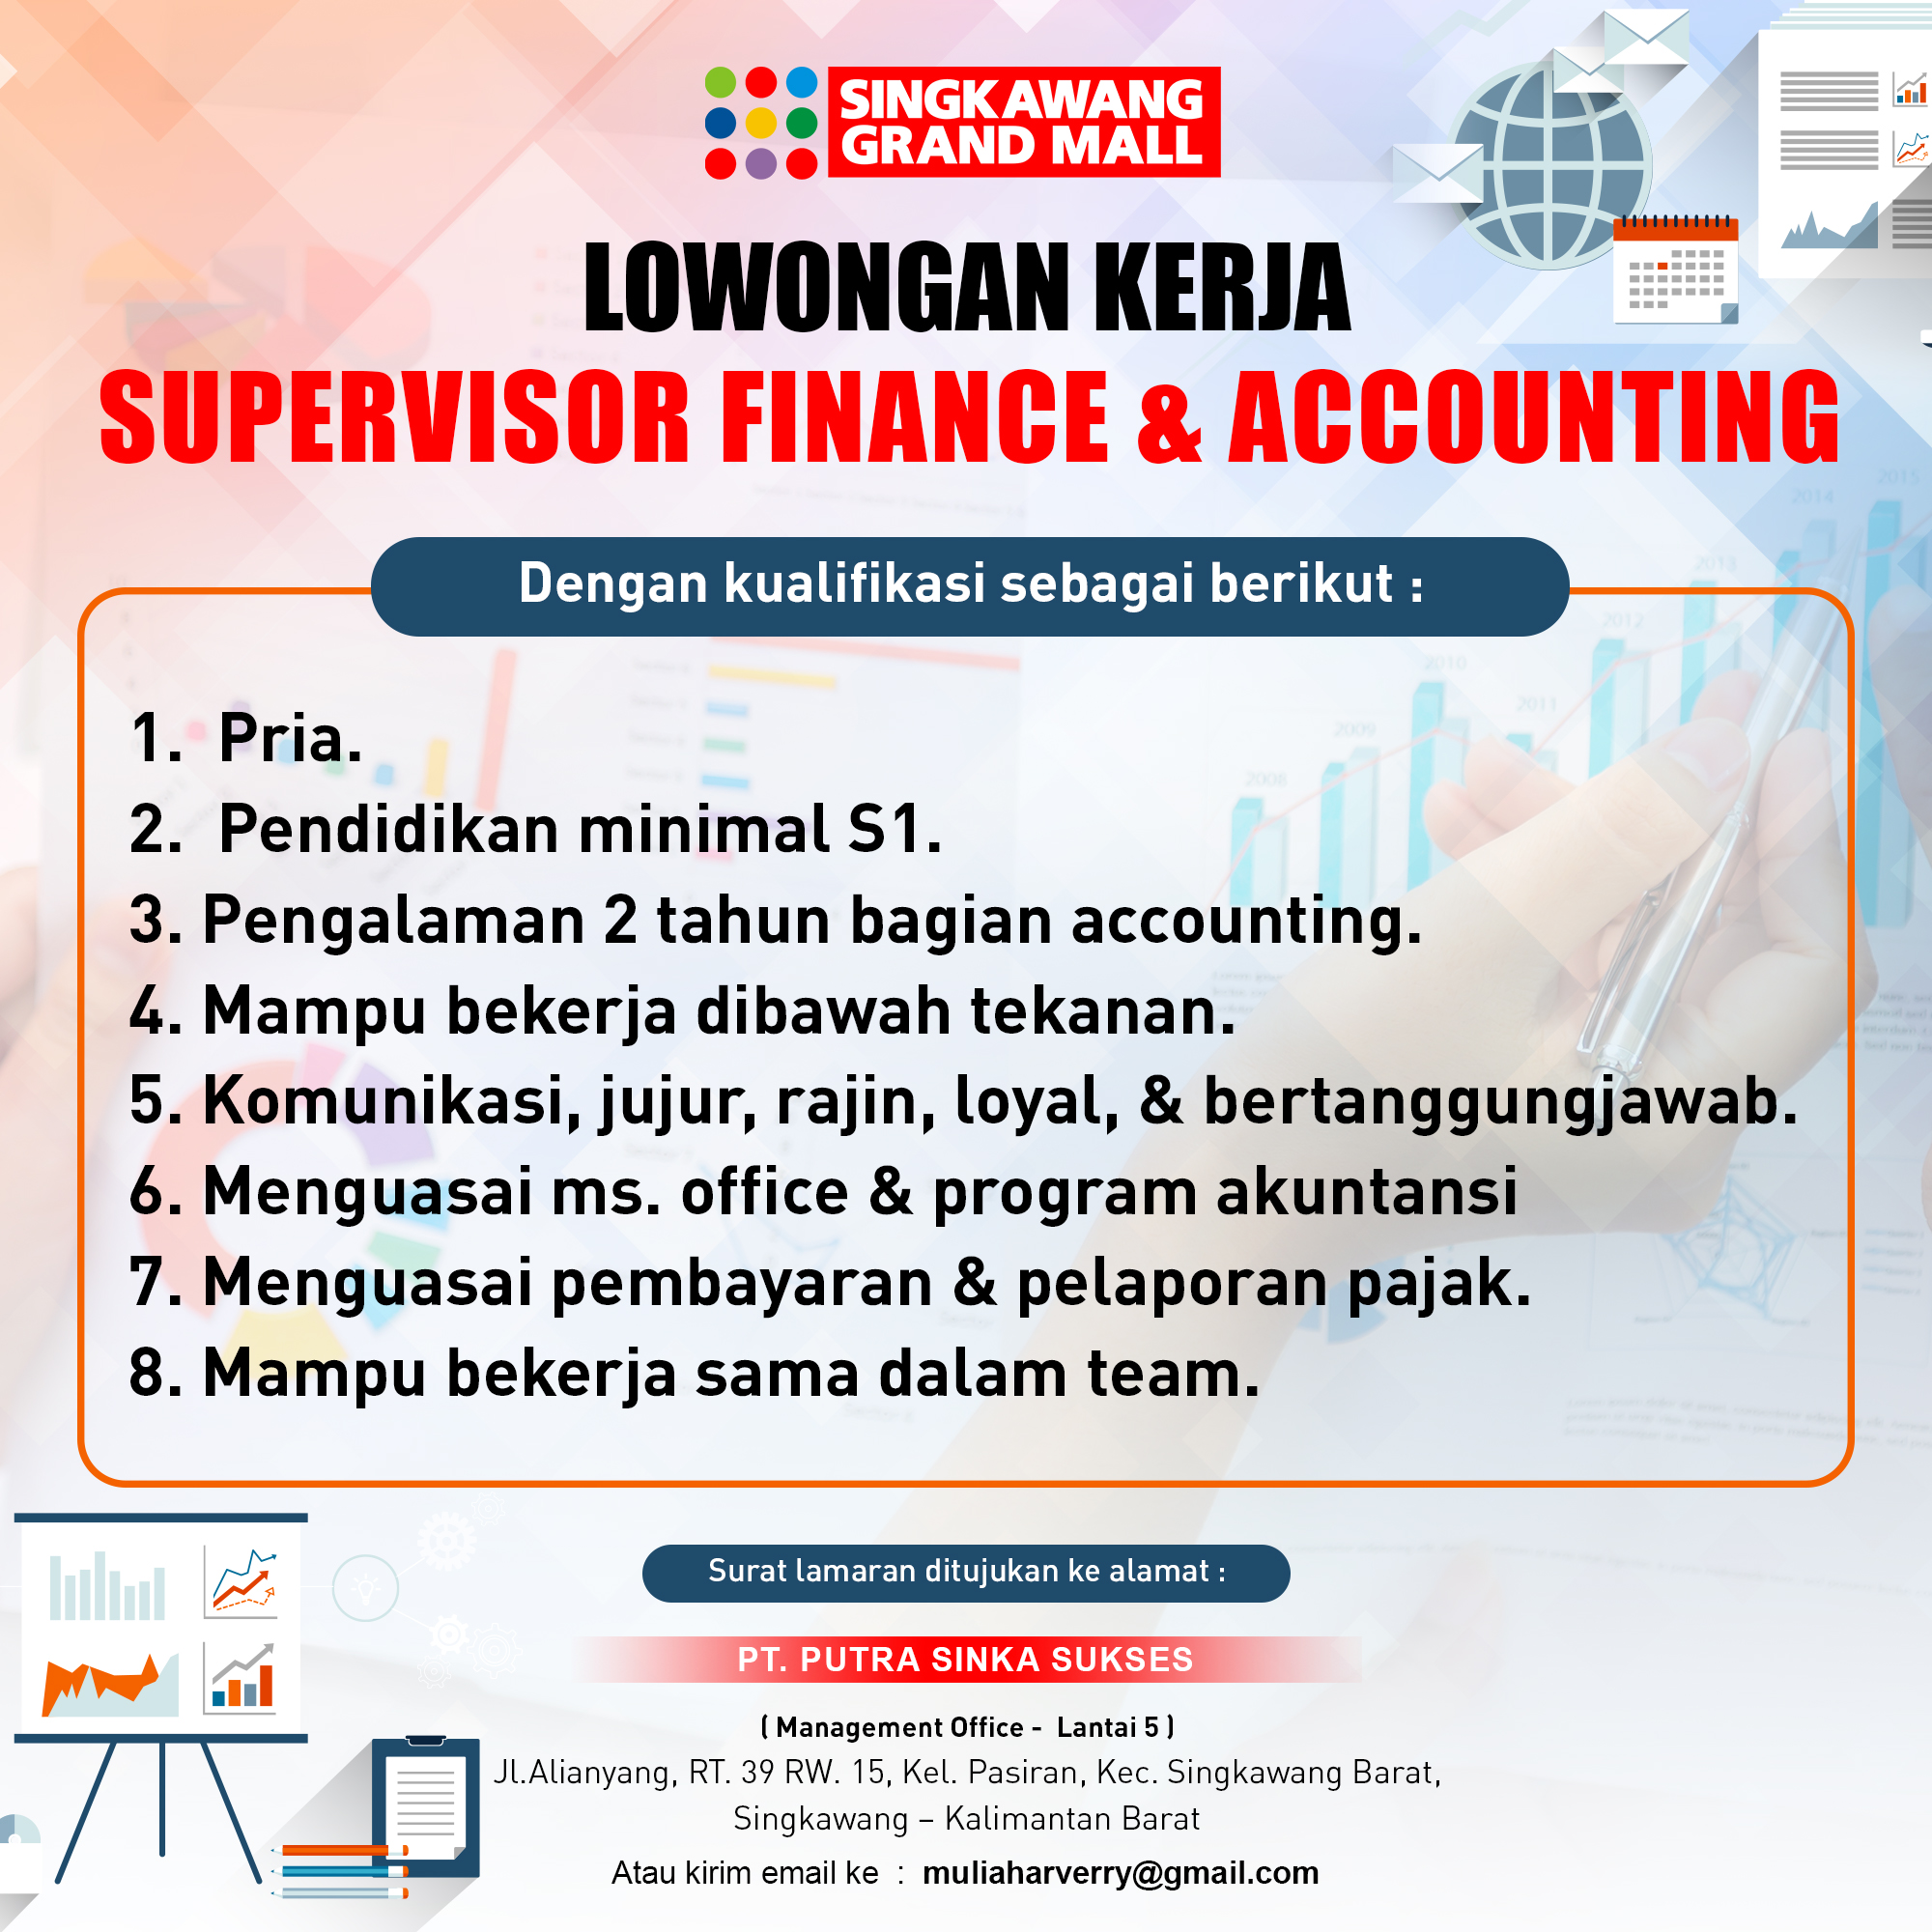 Lowongan Supervisor Finance & Accounting Singkawang Grand Mall